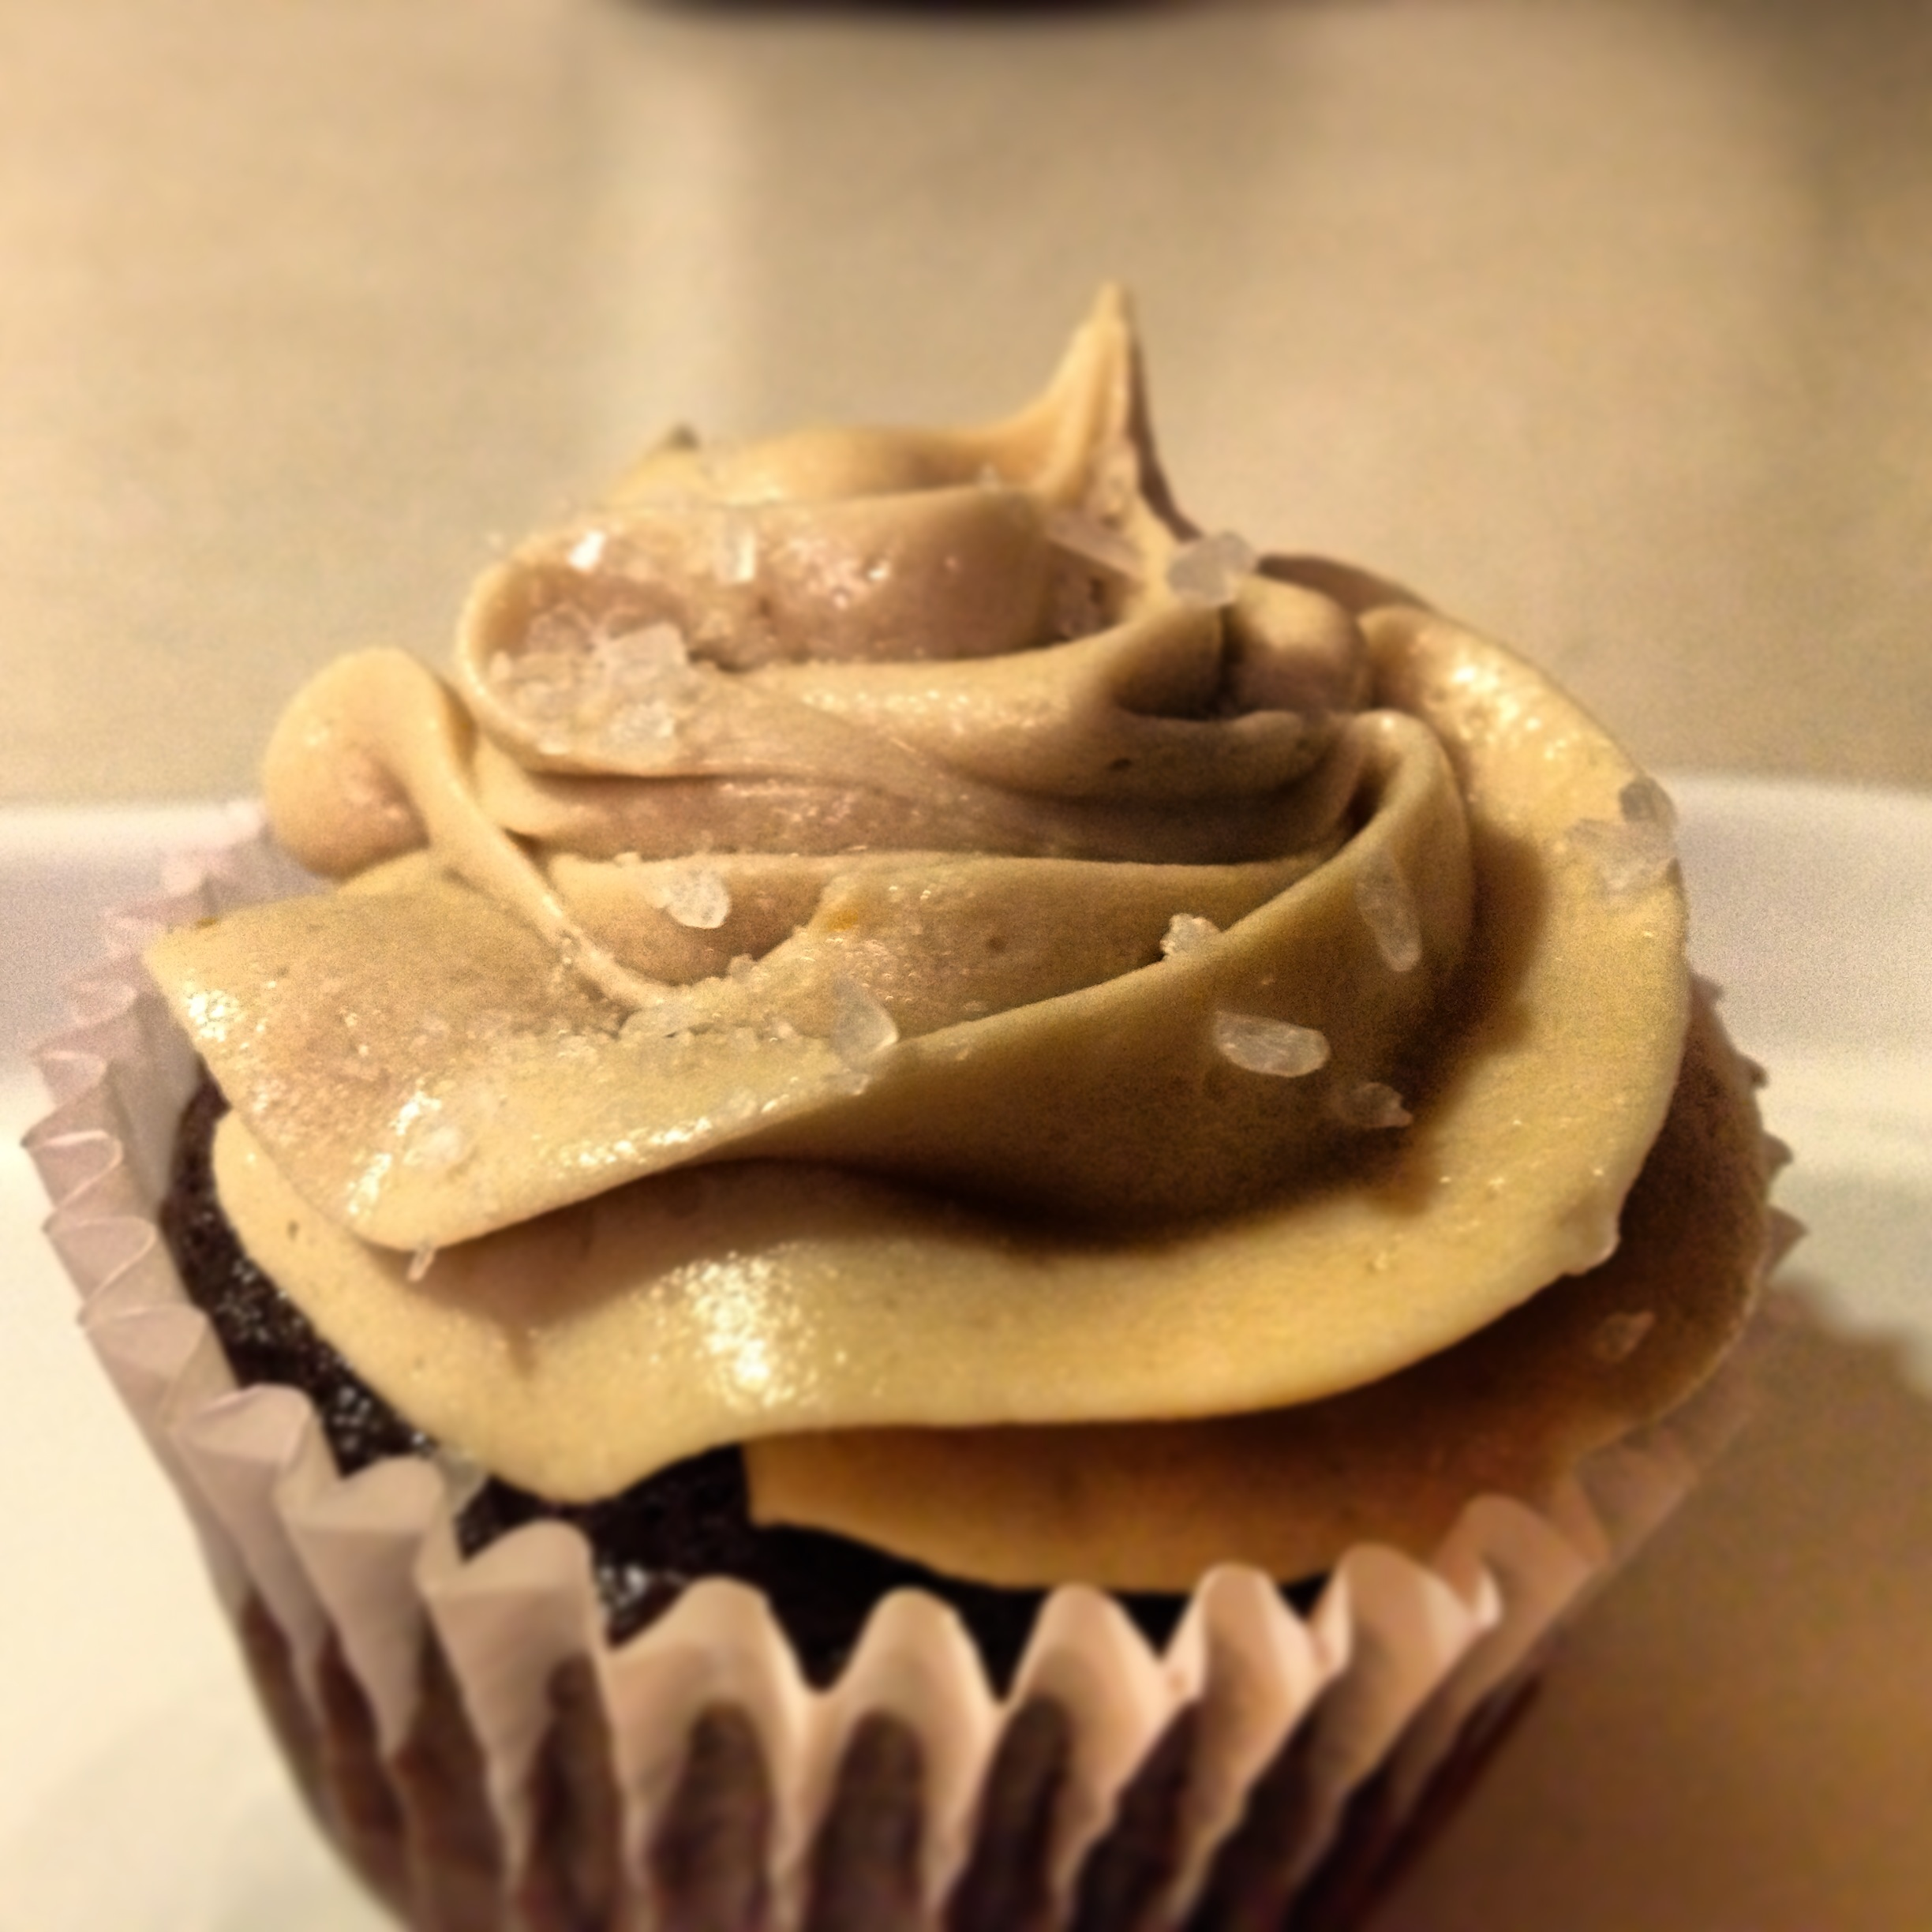 photo of a chocolate salted caramel cupcake from cocos confections